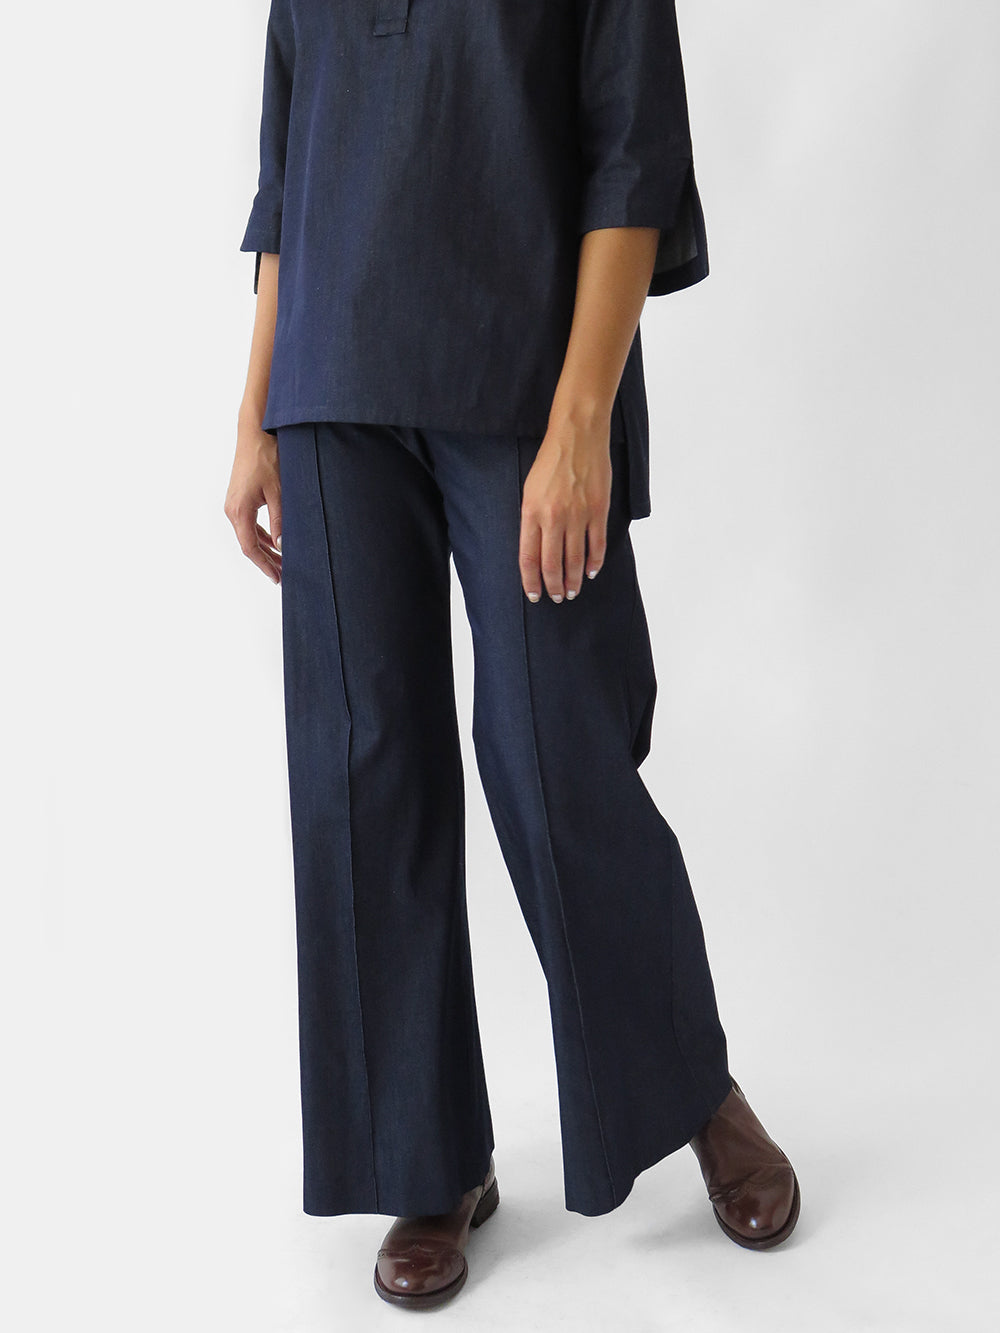 wilson pant in denim